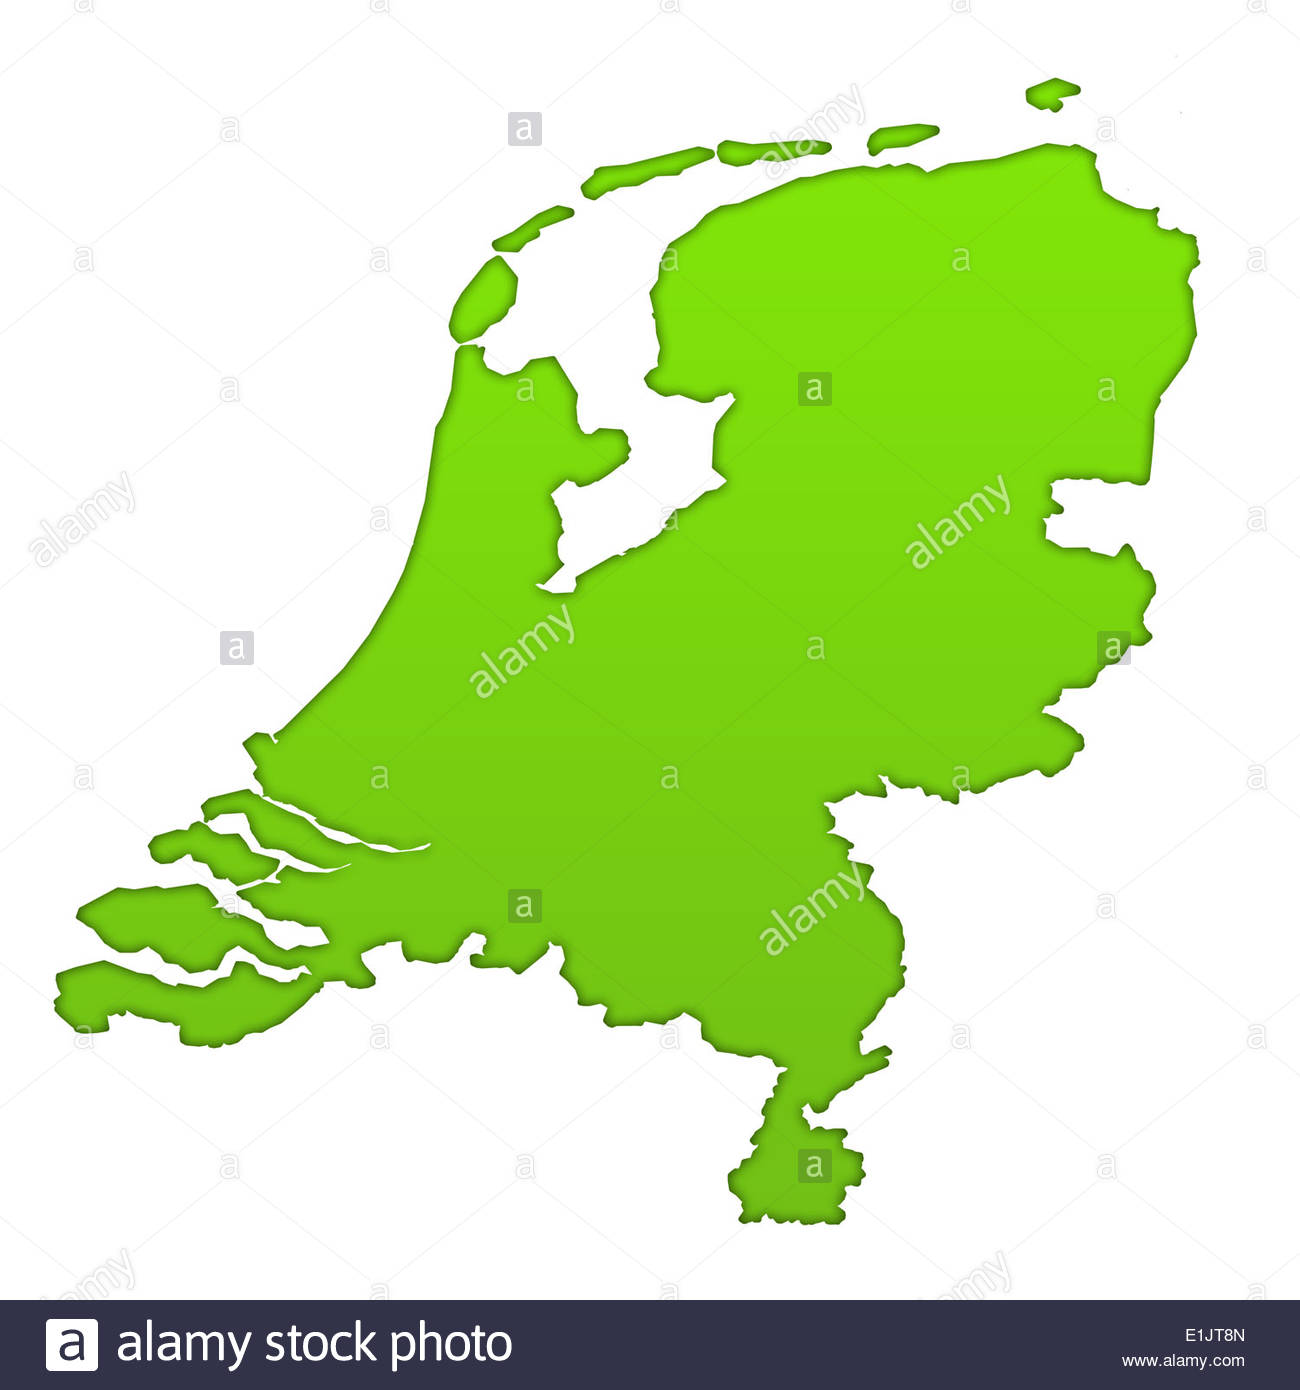 Netherlands country icon logo map Stock Photo: 69870325 - Alamy